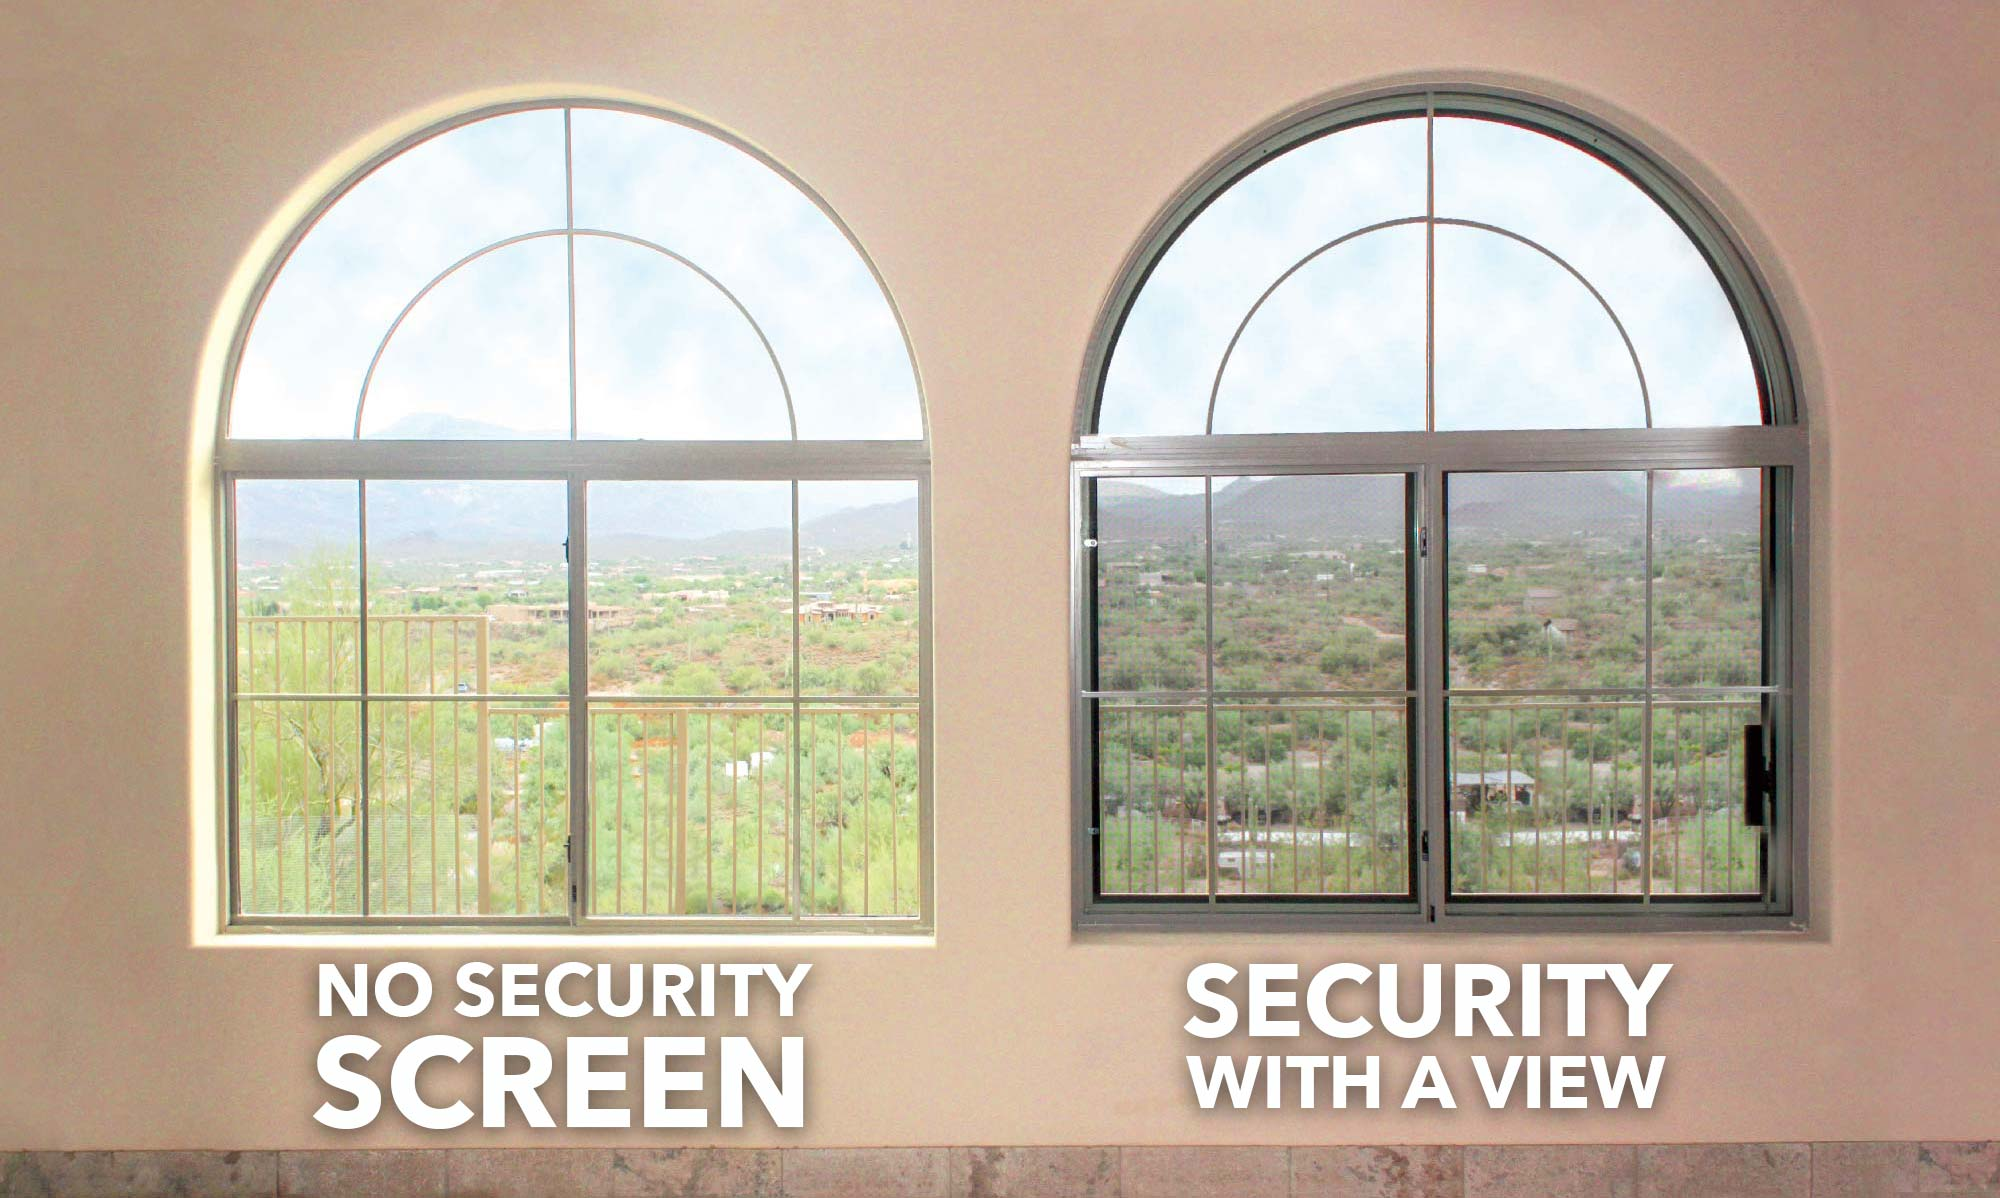 Home Window Security Comparison